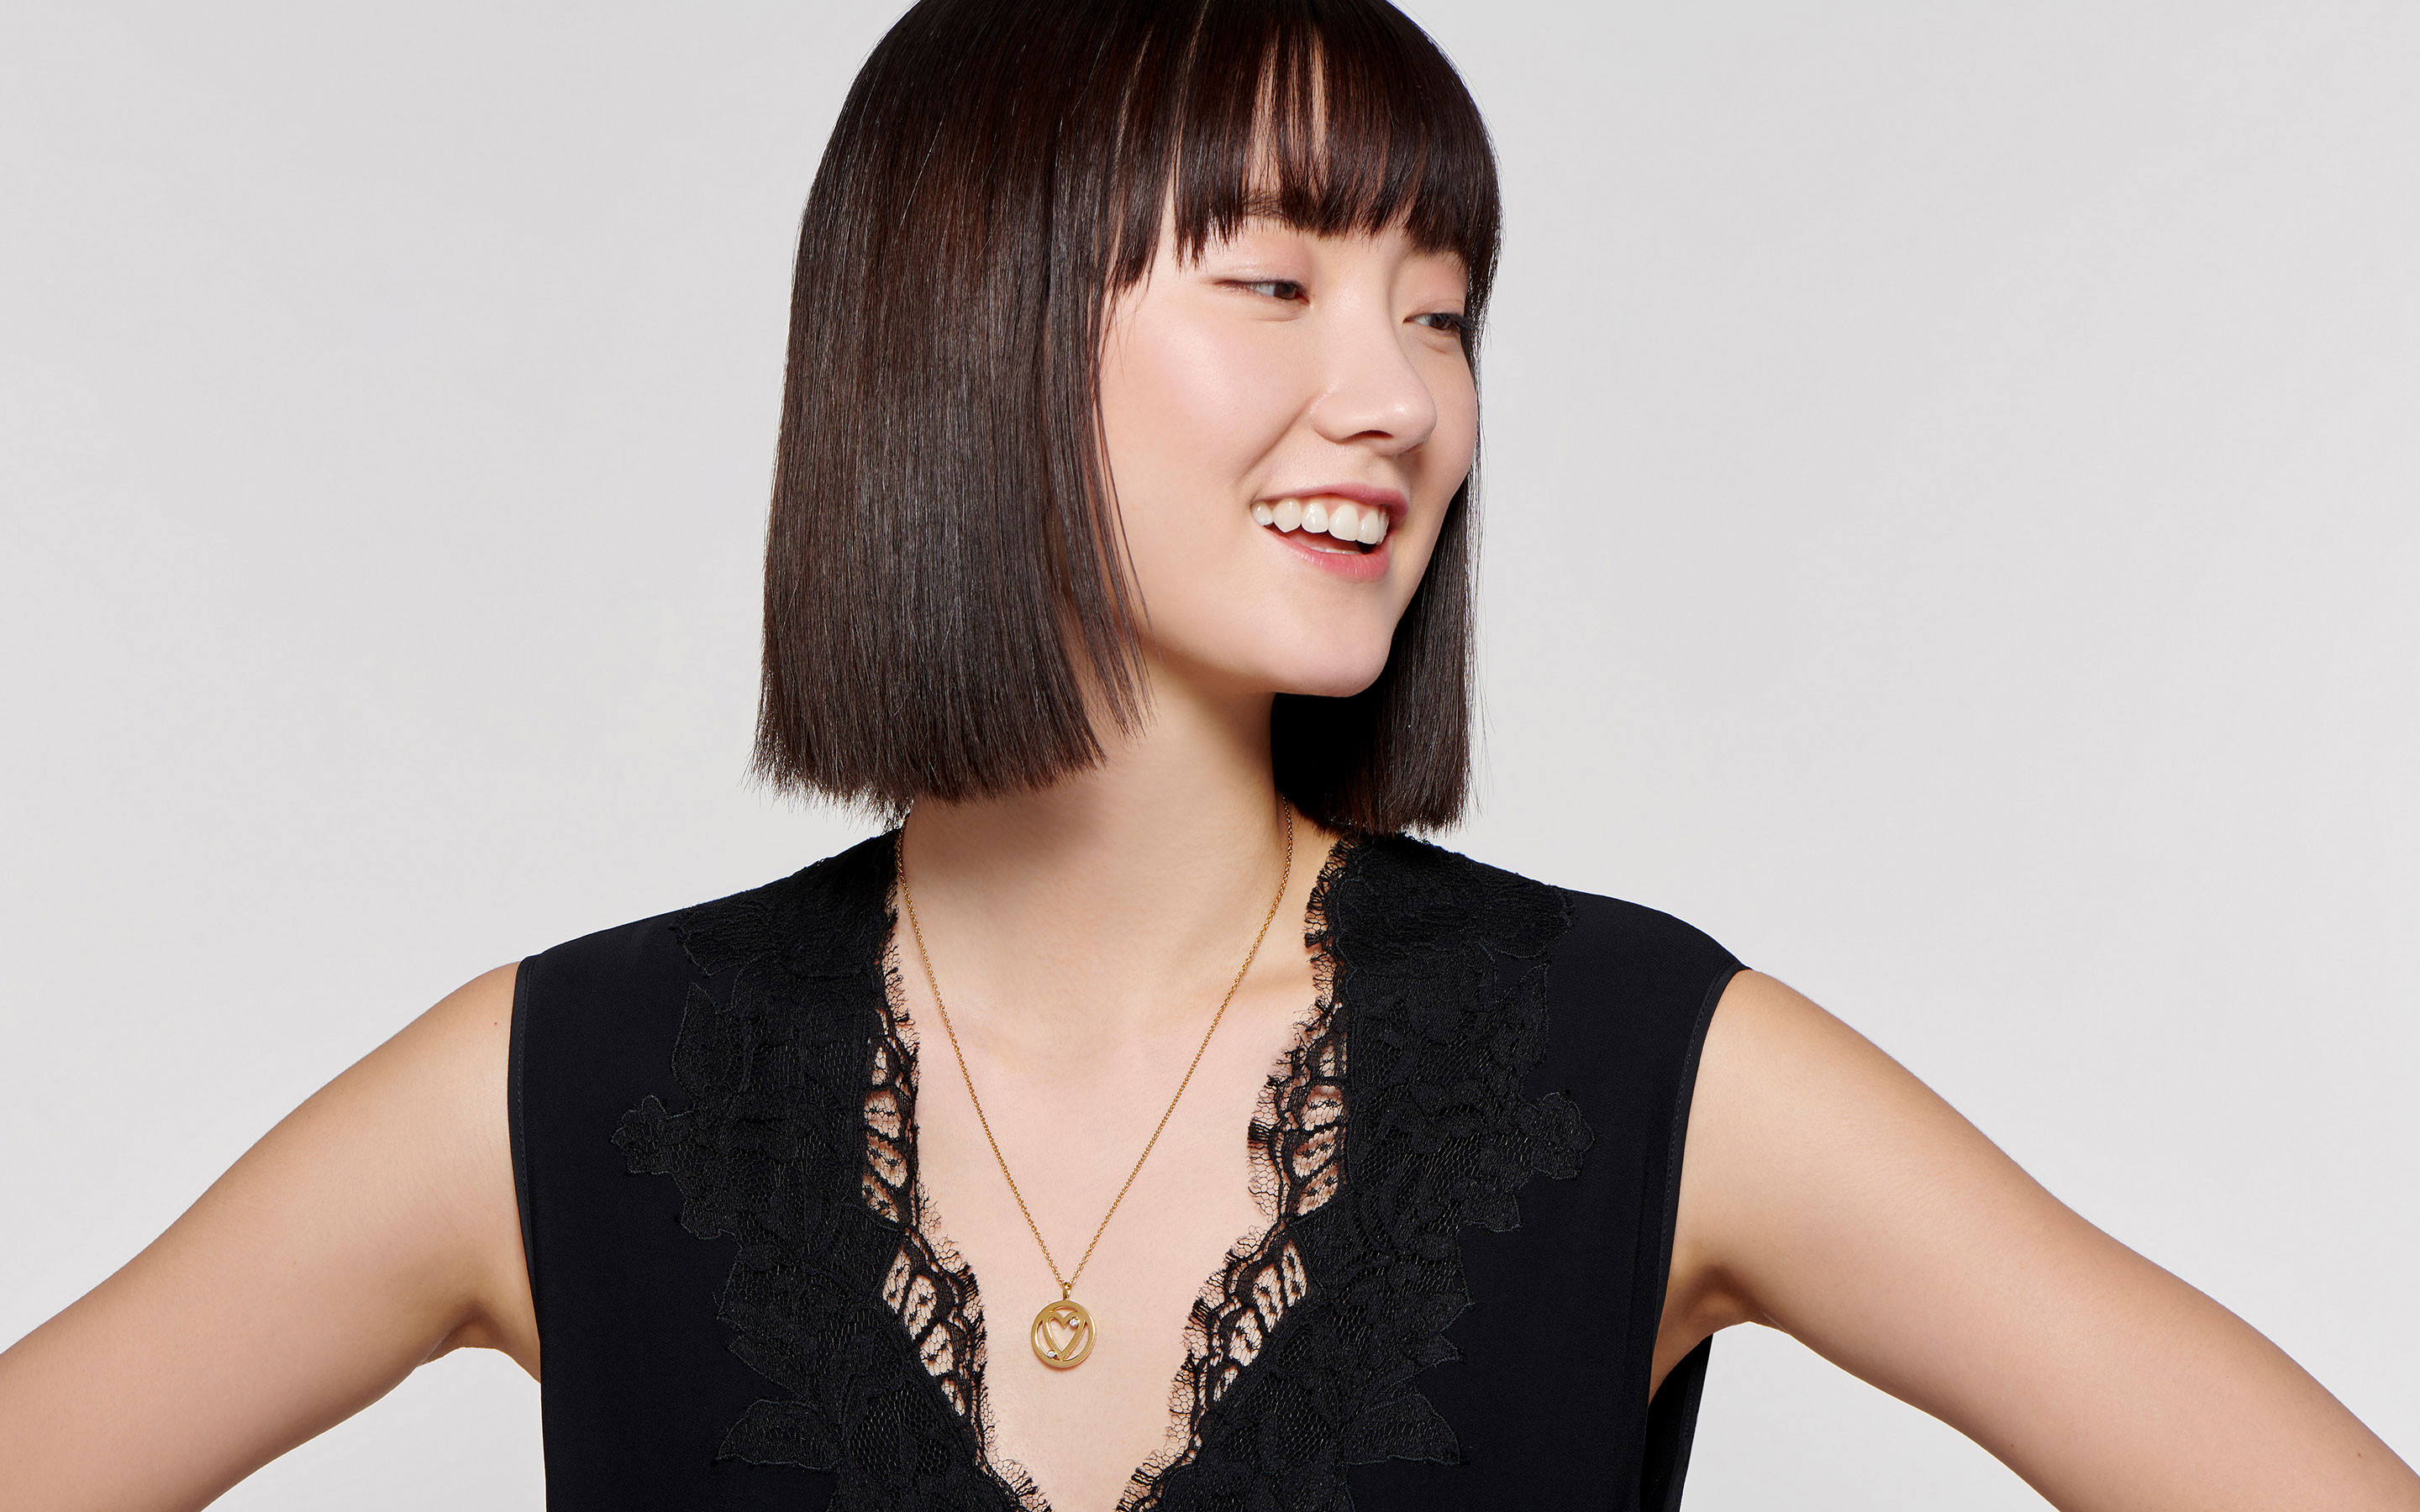 smiling East Asian model displaying stylish 22 karat gold necklace with open heart charm